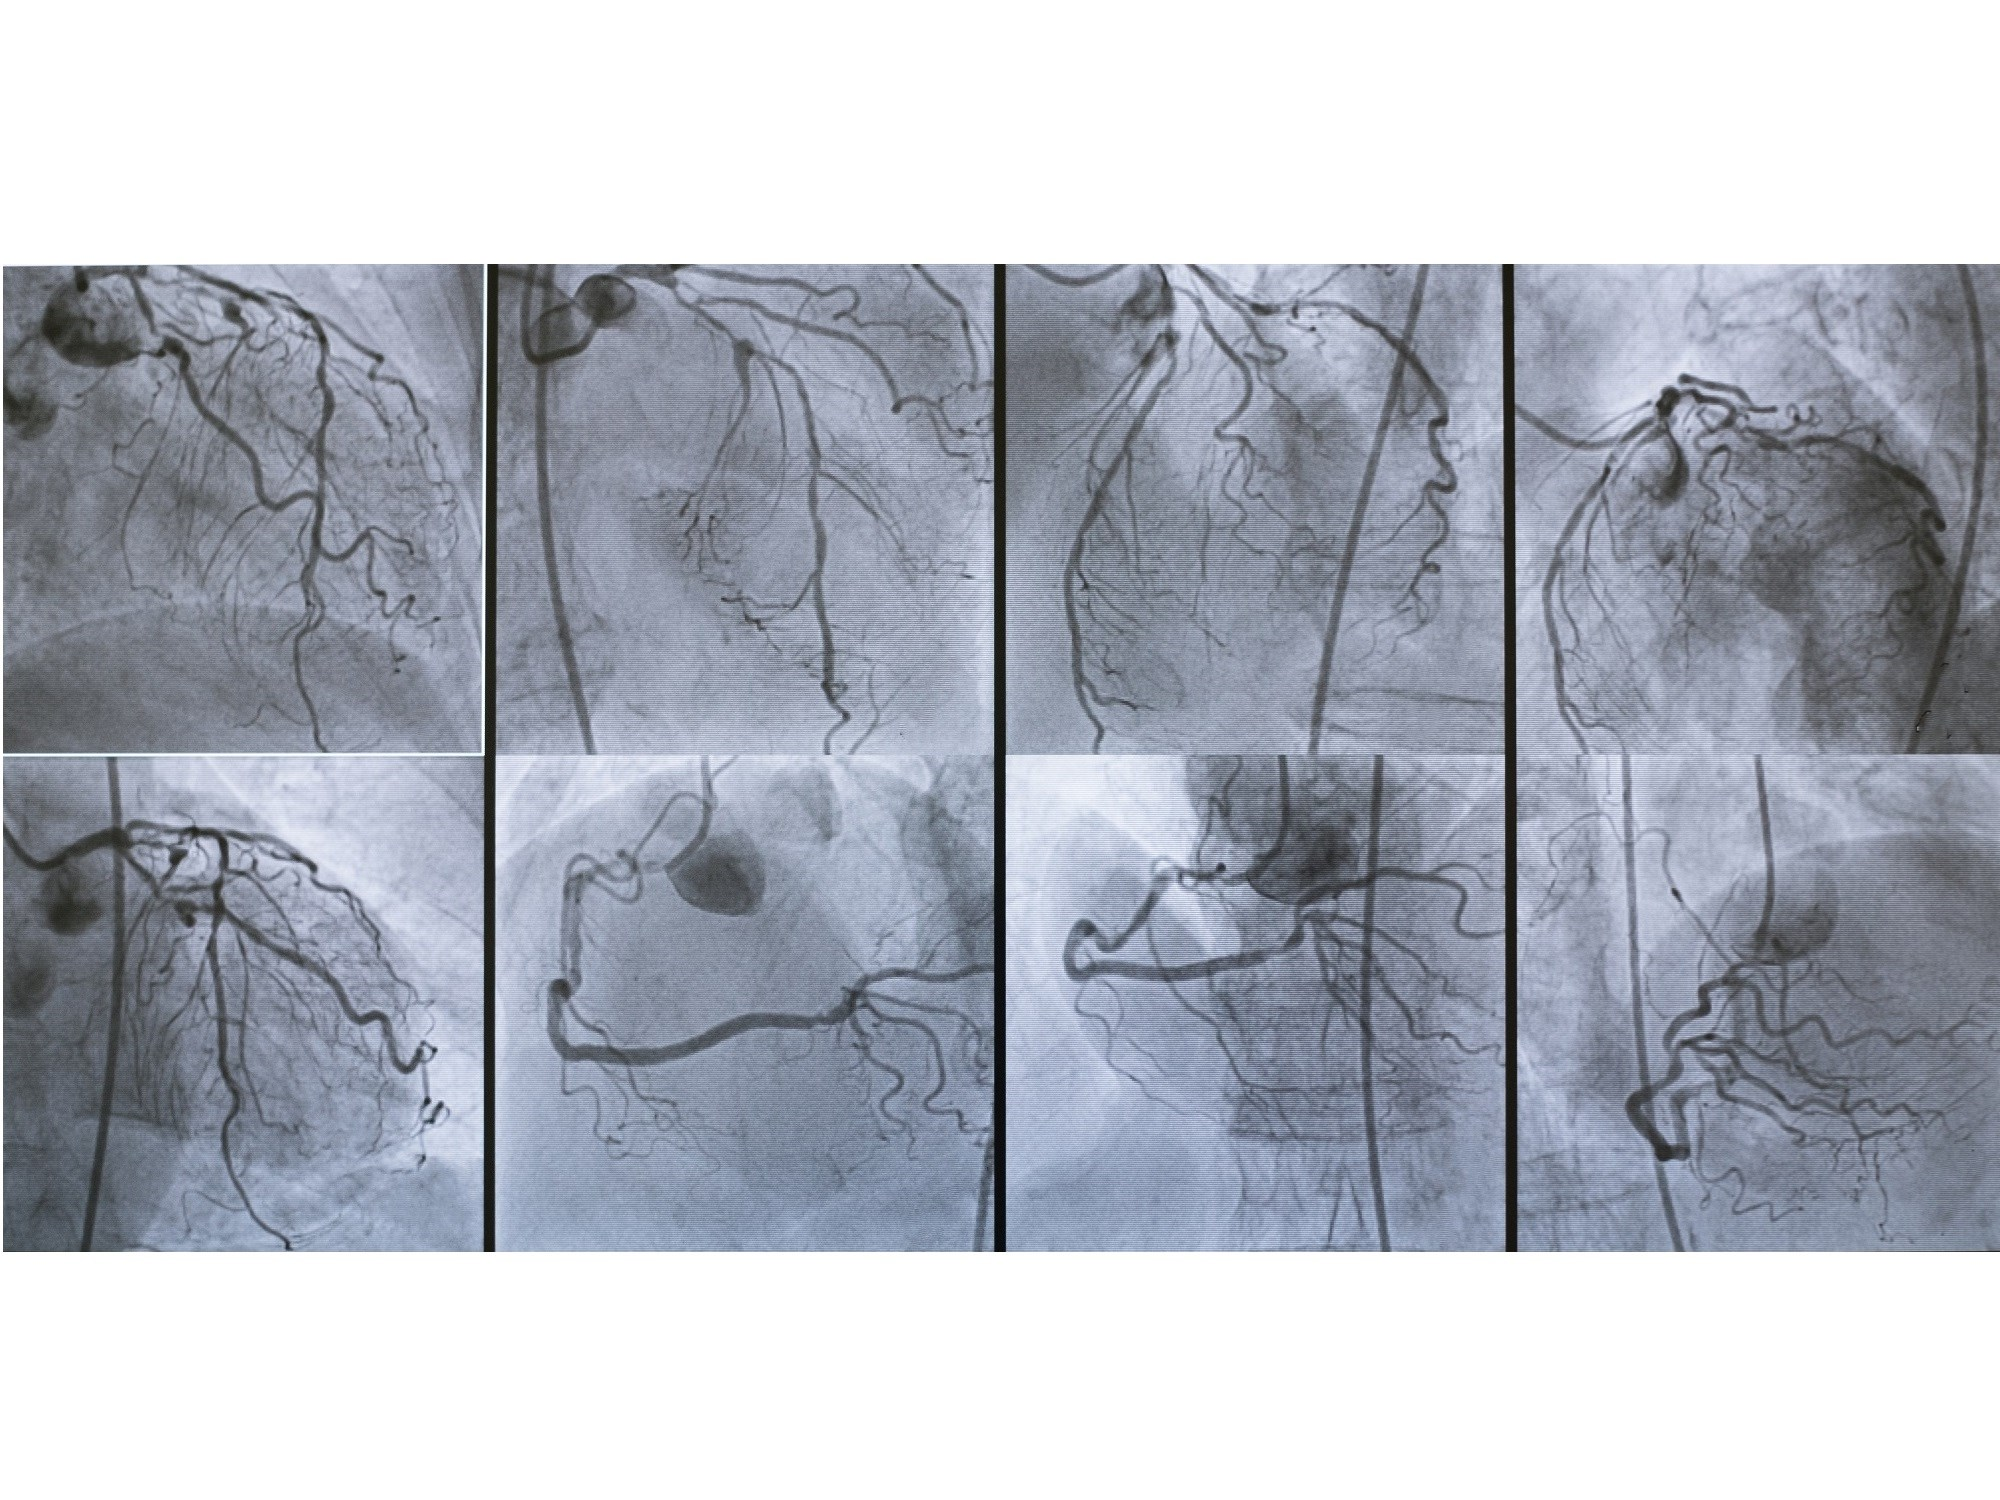 Single-stage complete coronary revascularization appears to be superior to culprit-only lesion intervention in multivessel disease ACS.